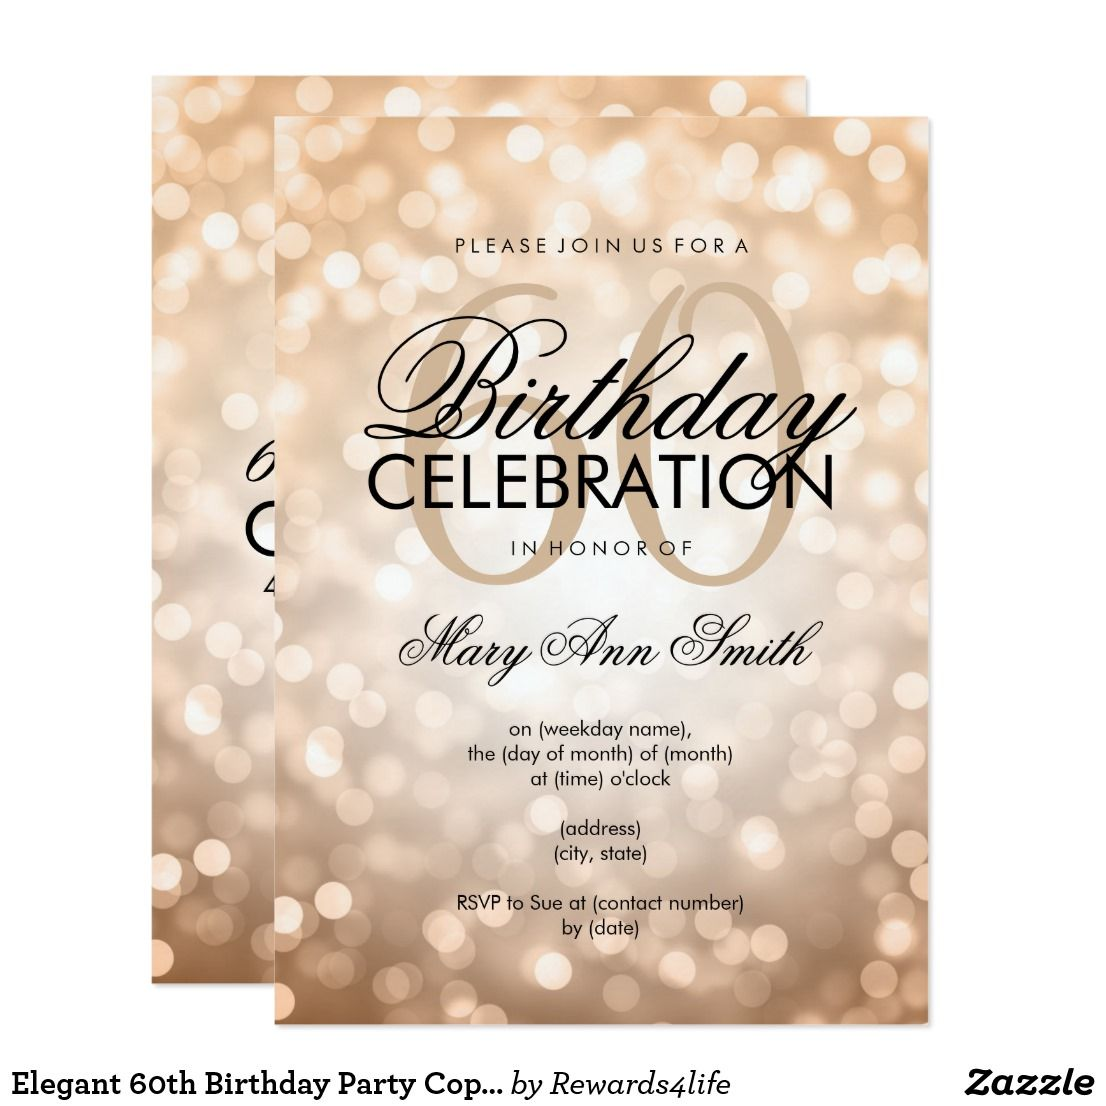 Elegant 60th birthday party copper glitter lights card birthday elegant 60th birthday party copper glitter lights card filmwisefo Choice Image